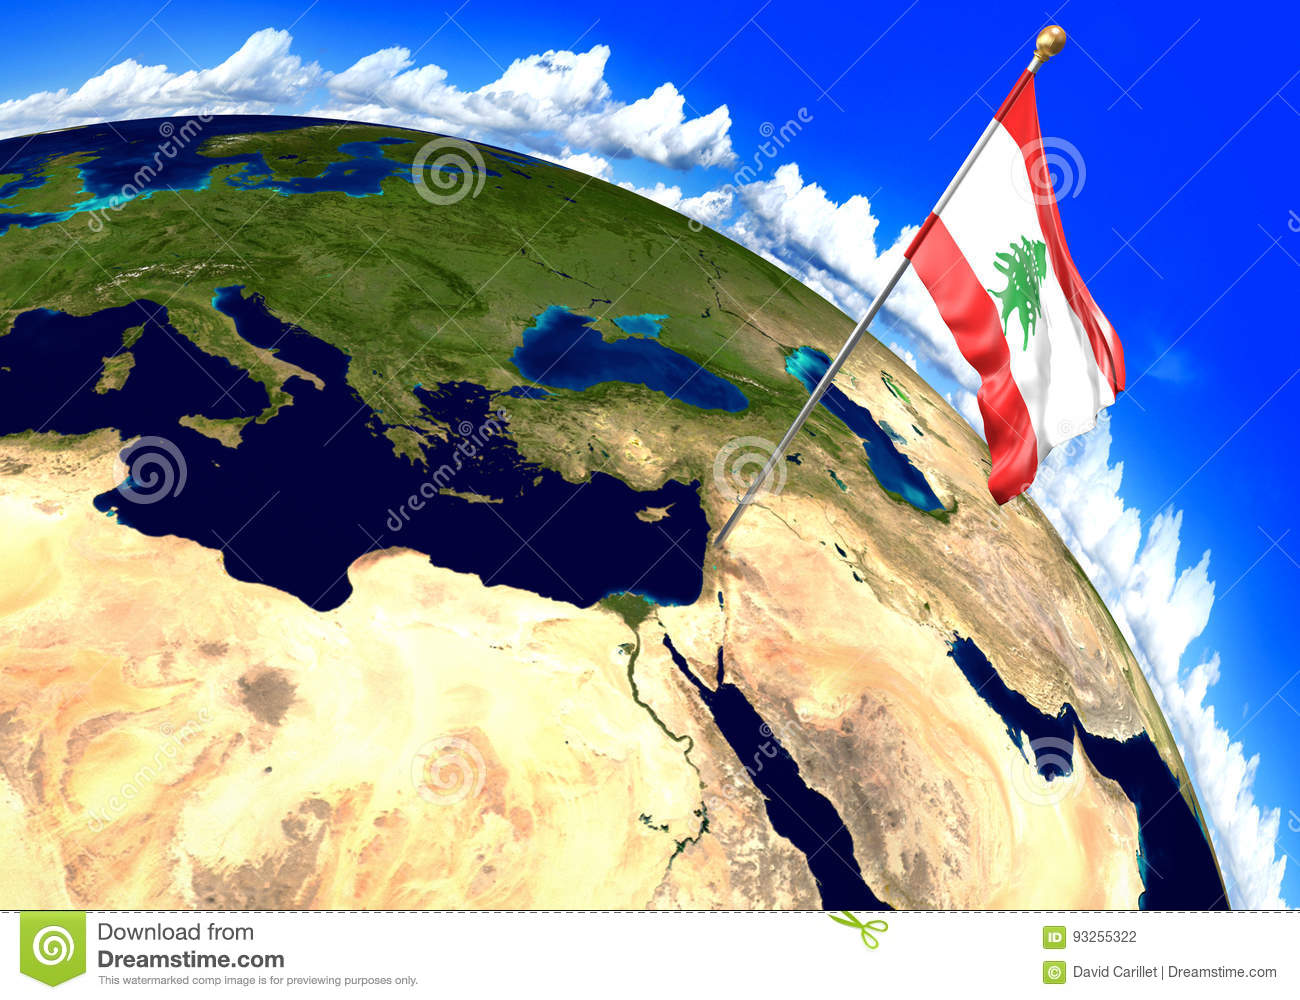 Lebanon National Flag Marking The Country Location On World Map 3d